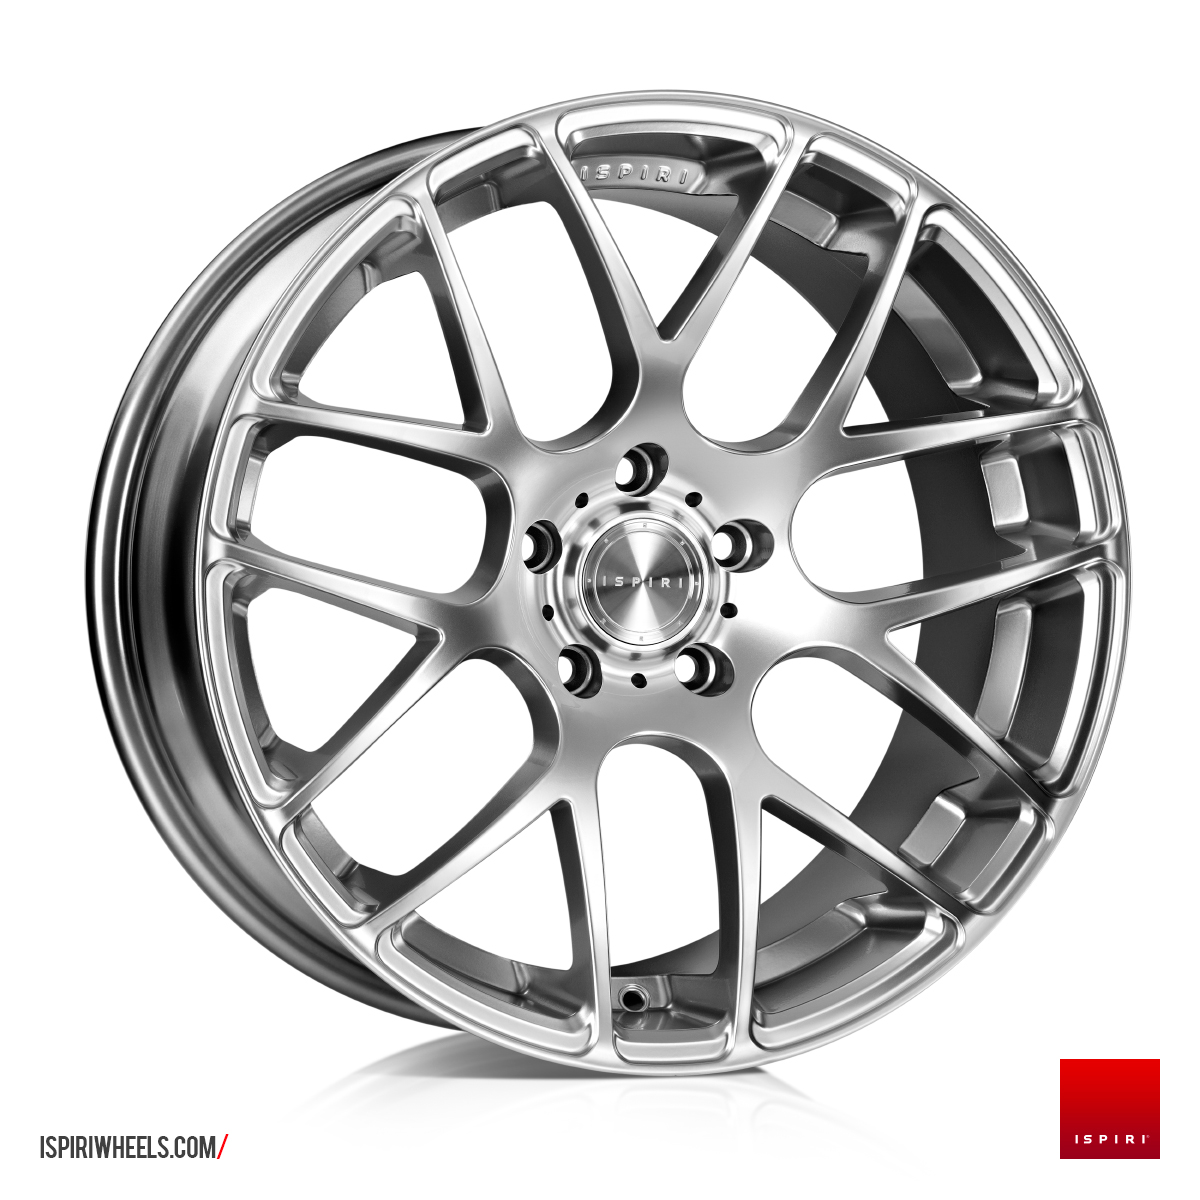 "NEW 20"" ISPIRI ISR1 CROSS SPOKE ALLOY WHEELS IN DIAMOND SILVER, WIDER 10"" REAR"